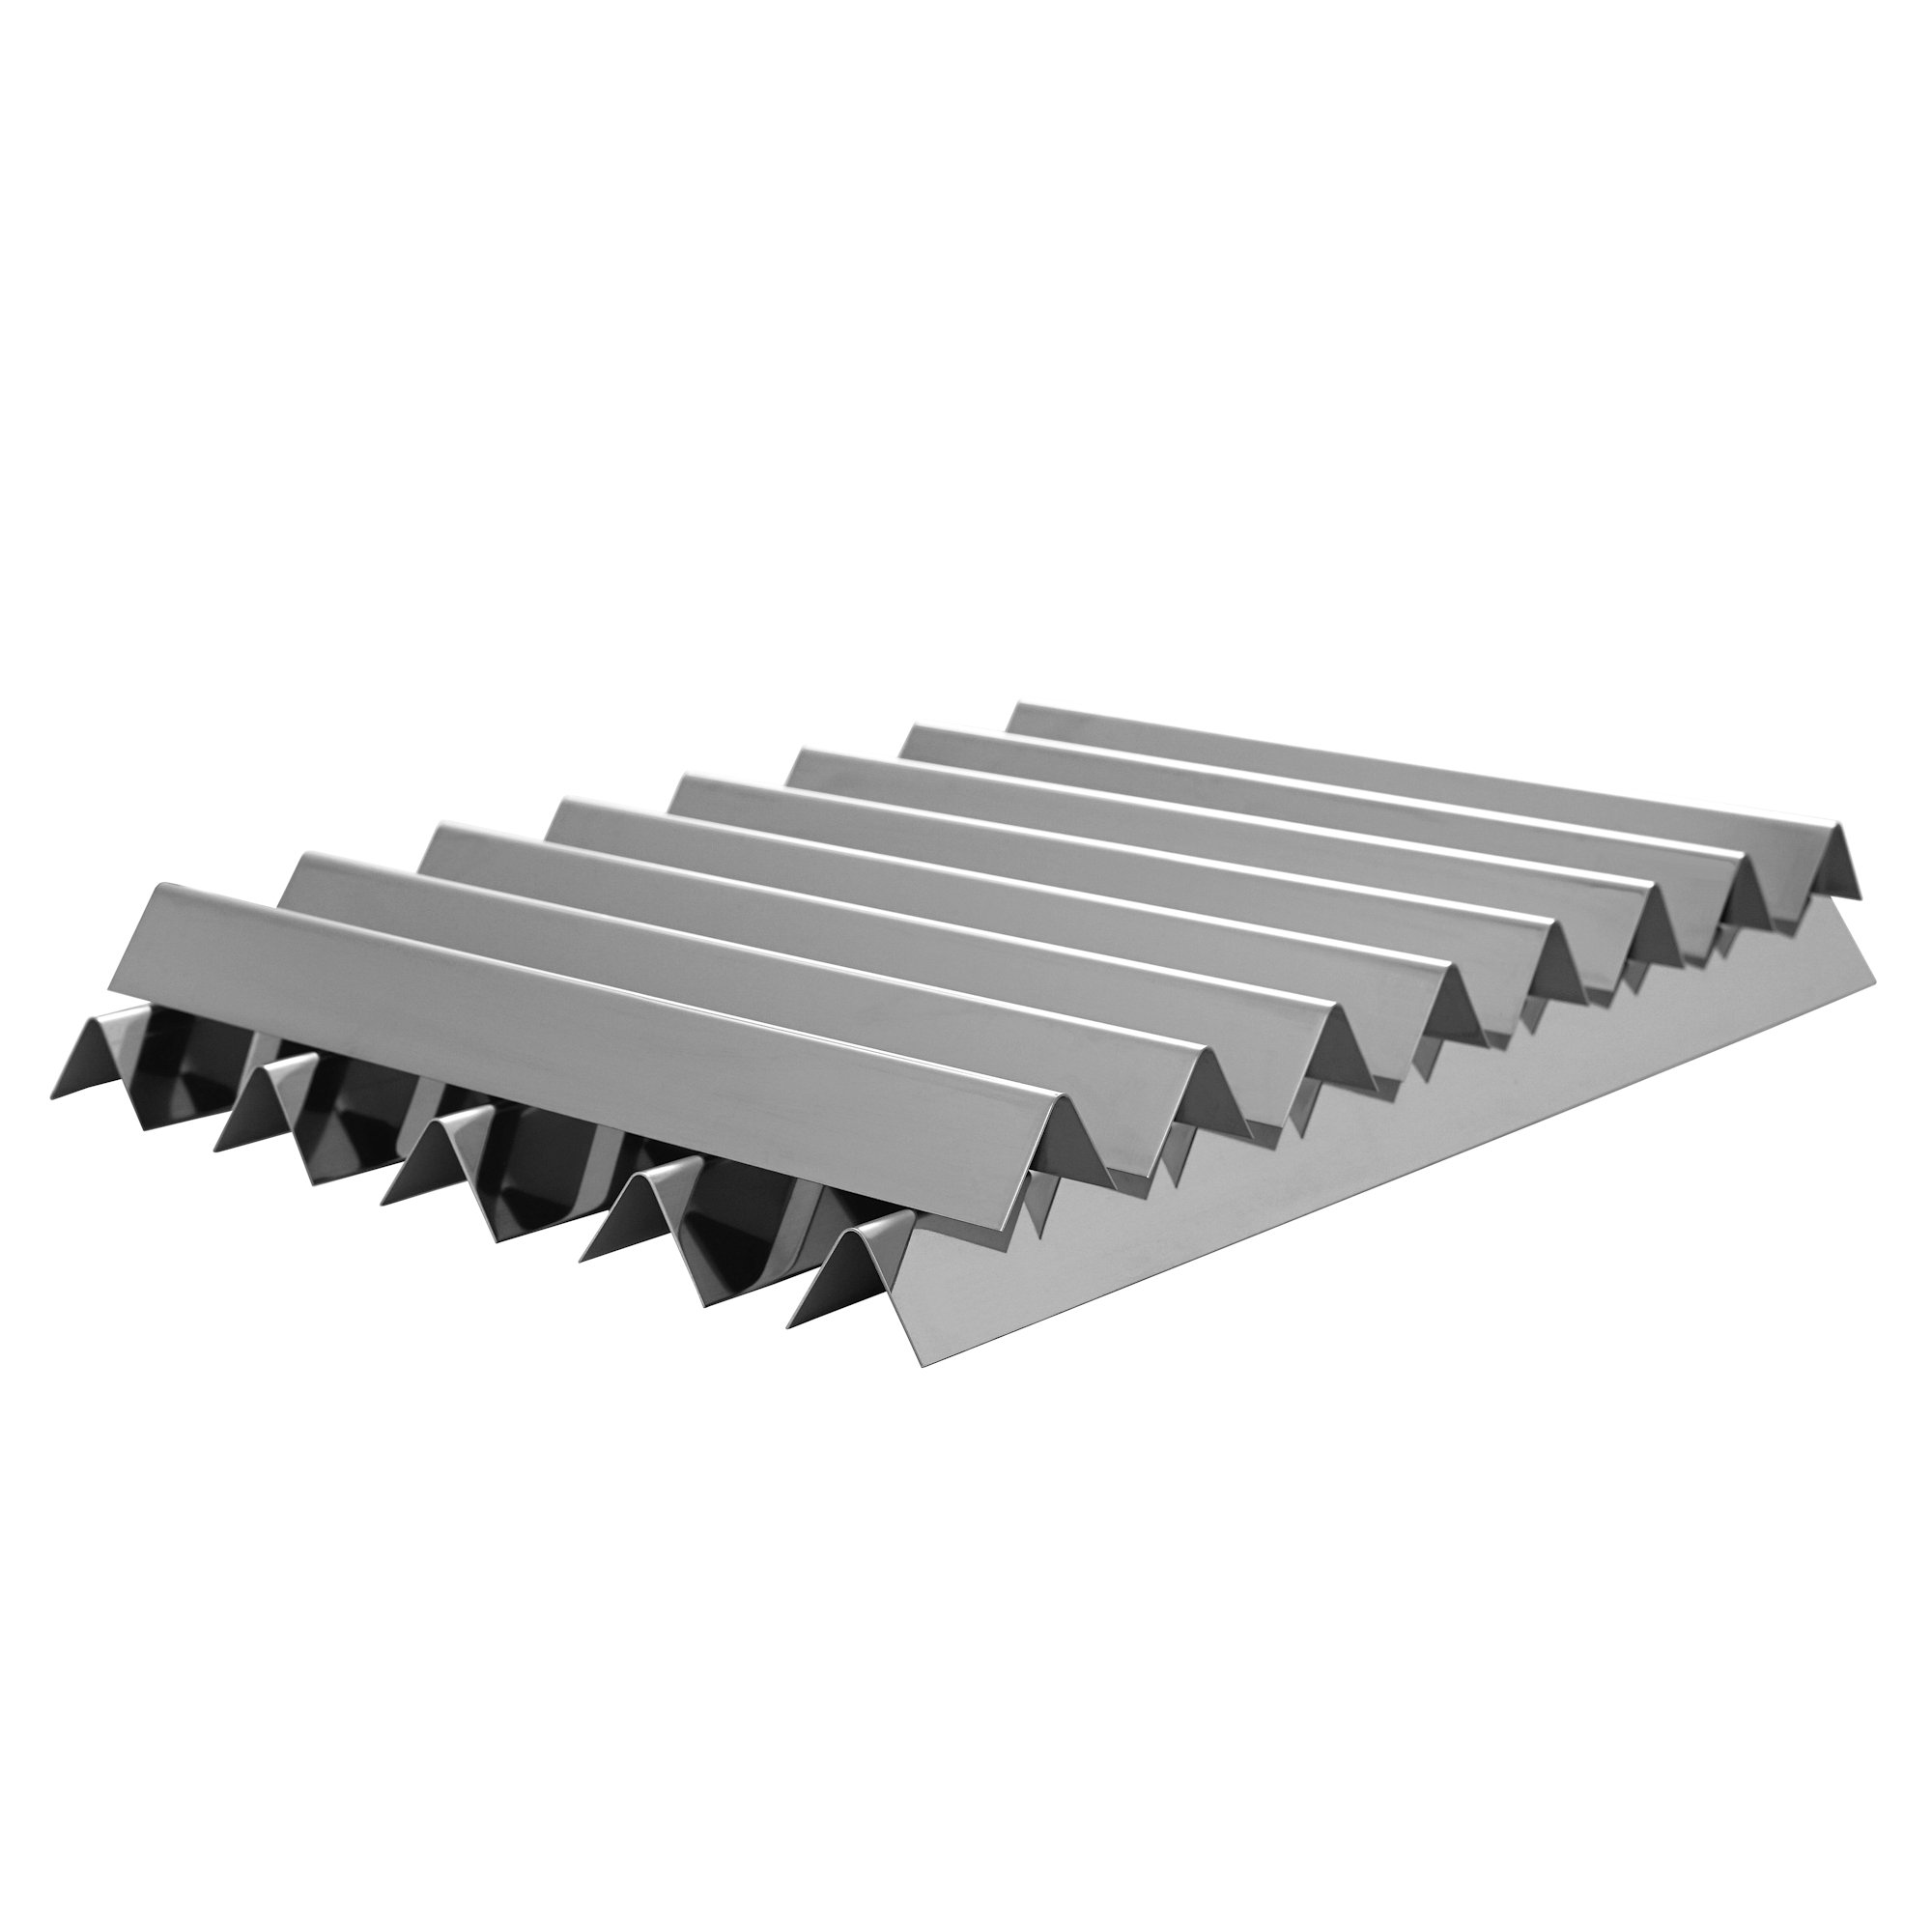 BBQ-Toro Stainless Steel Flavorizer Bars (8 pcs + 5 pcs) | 16.0 inches + 23.4 inches | 19 Gauge | for Weber Genesis 1000-5500, Genesis Platinum I & II